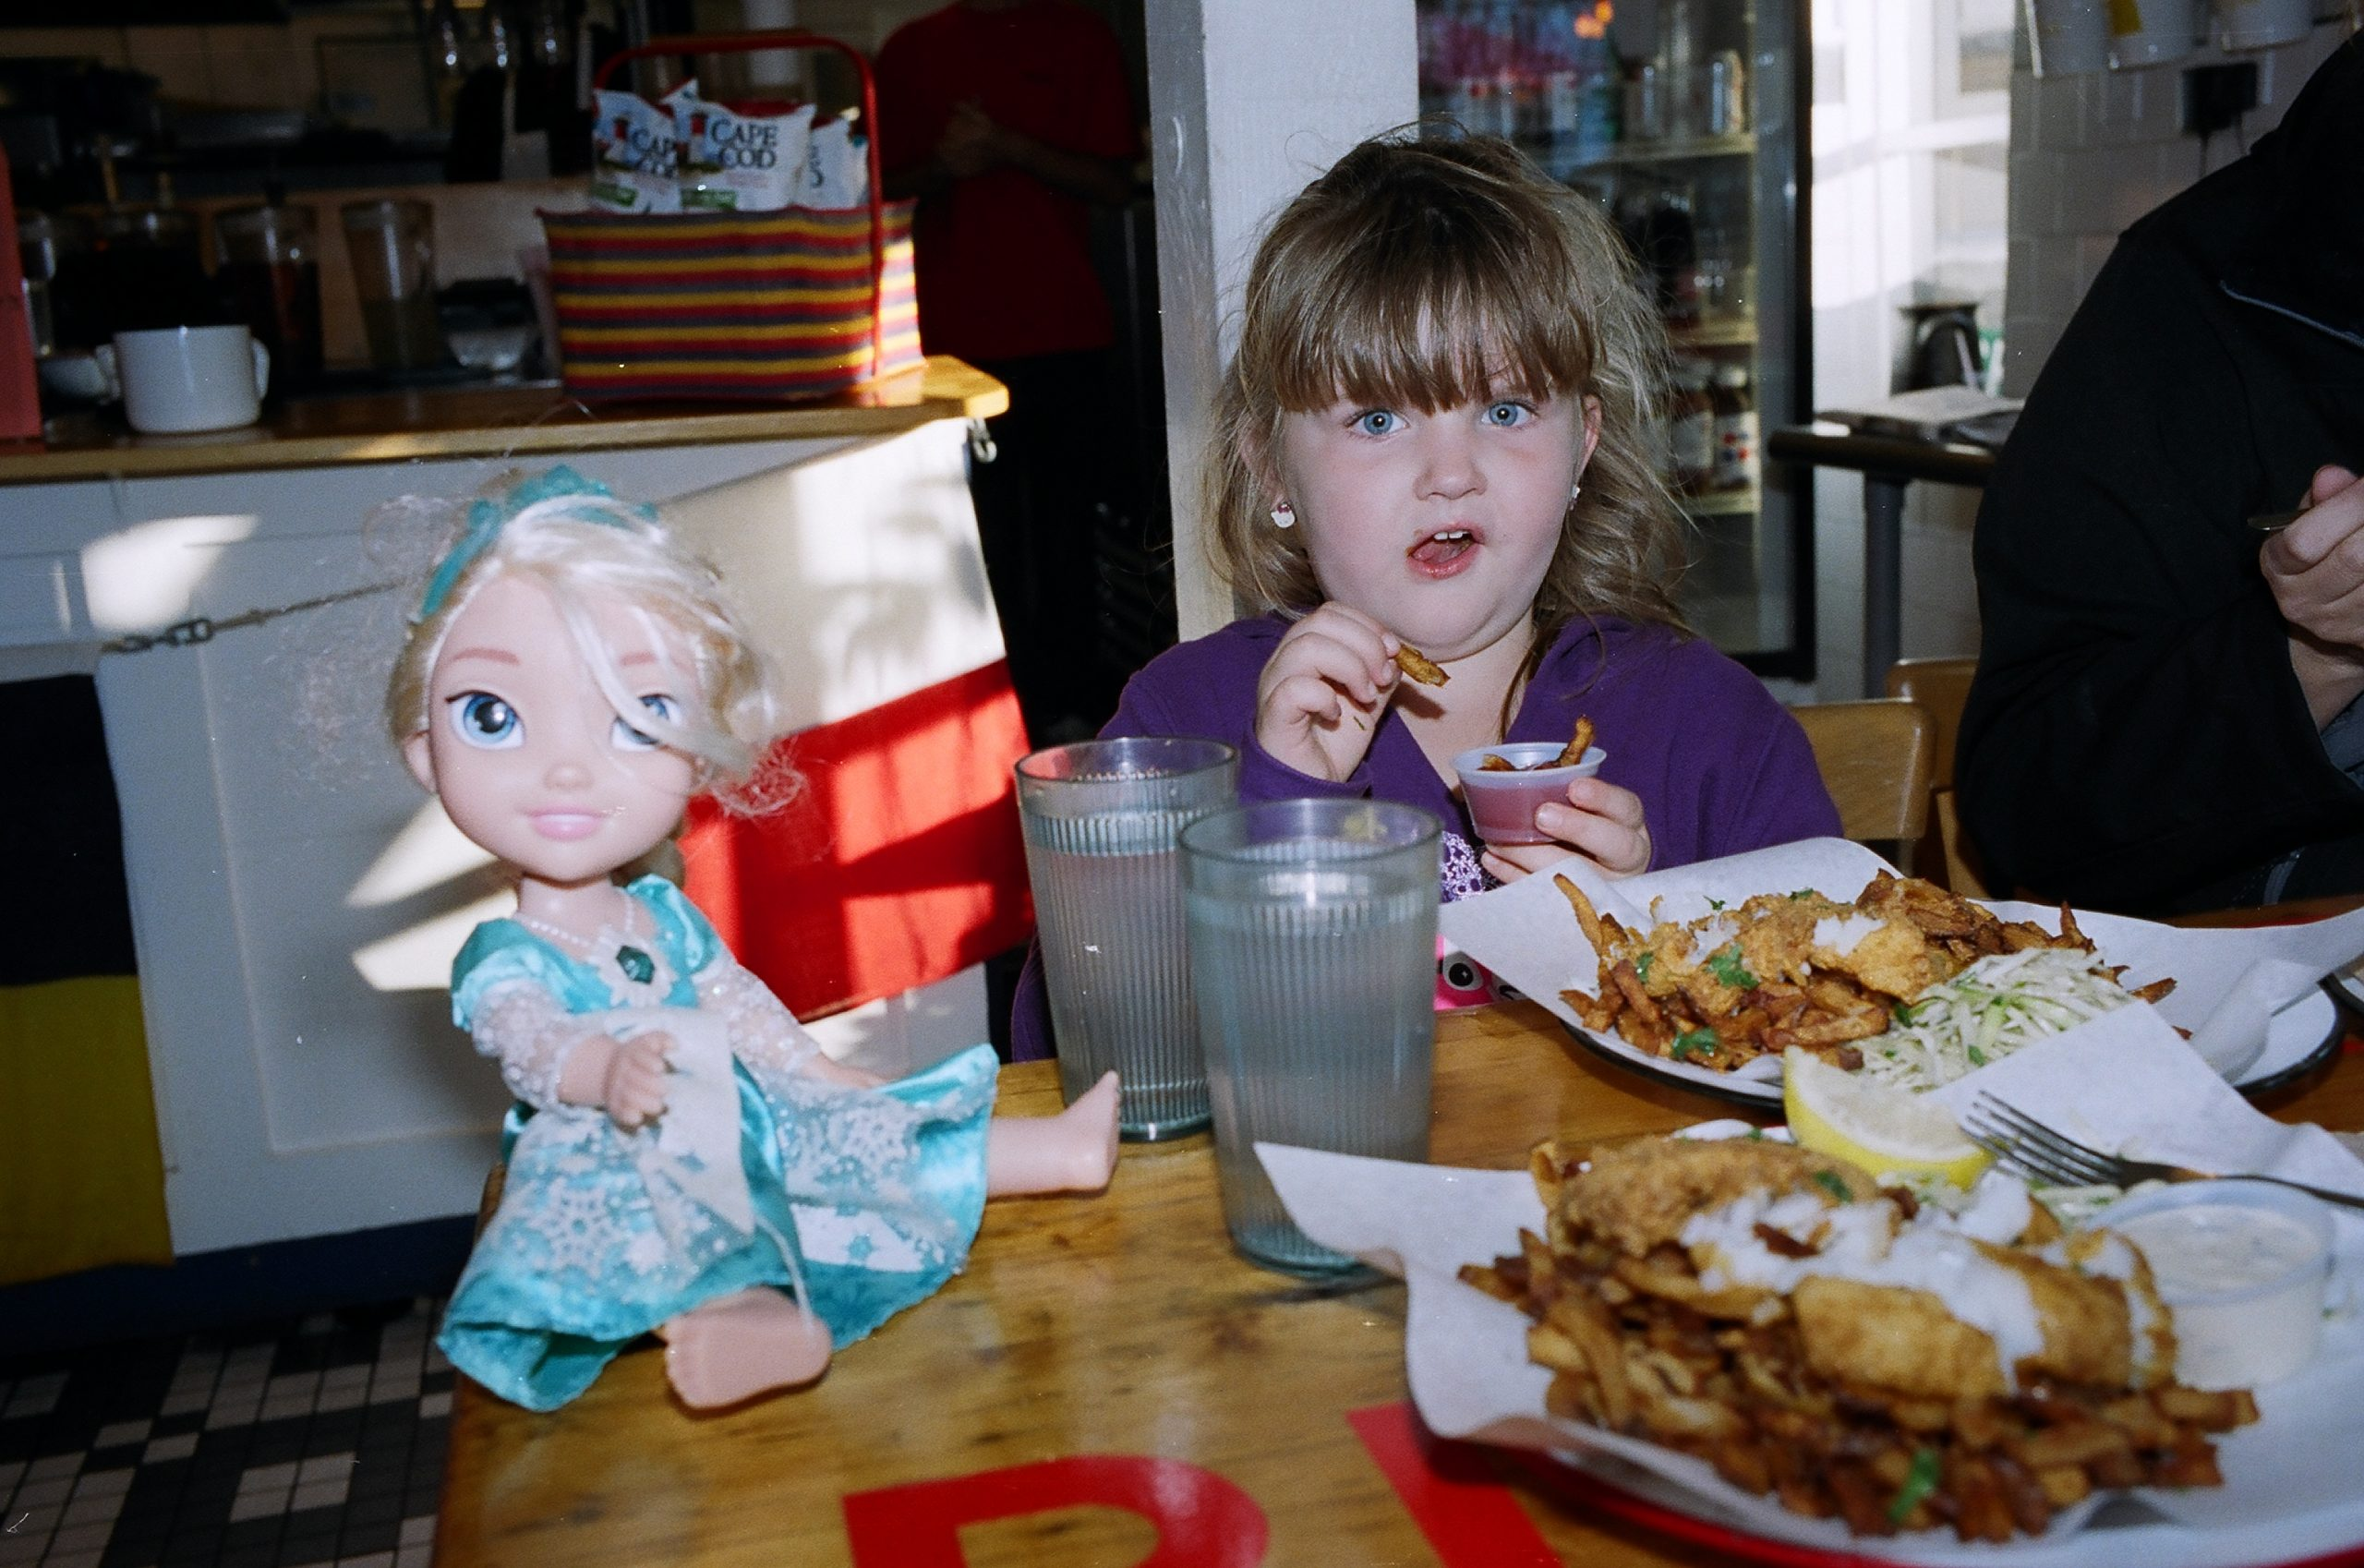 child French fries overfat